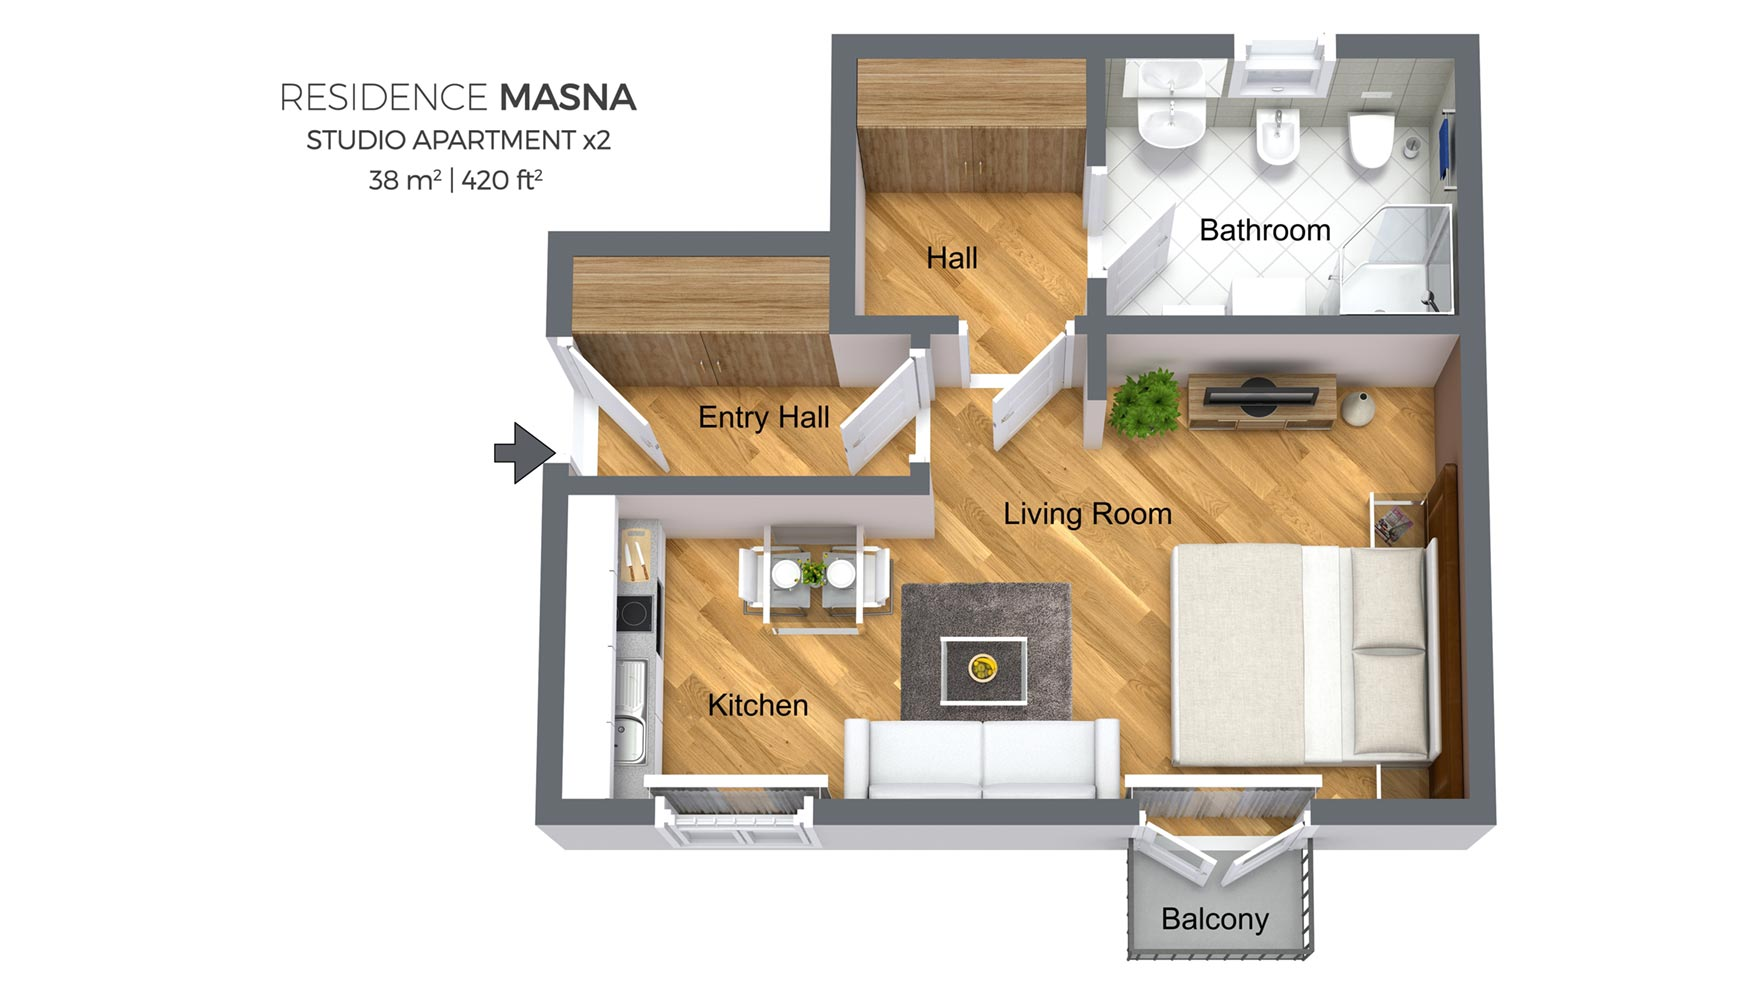 How To Set Up A Studio Apartment Studio Apartment Type 2 Residence Masna